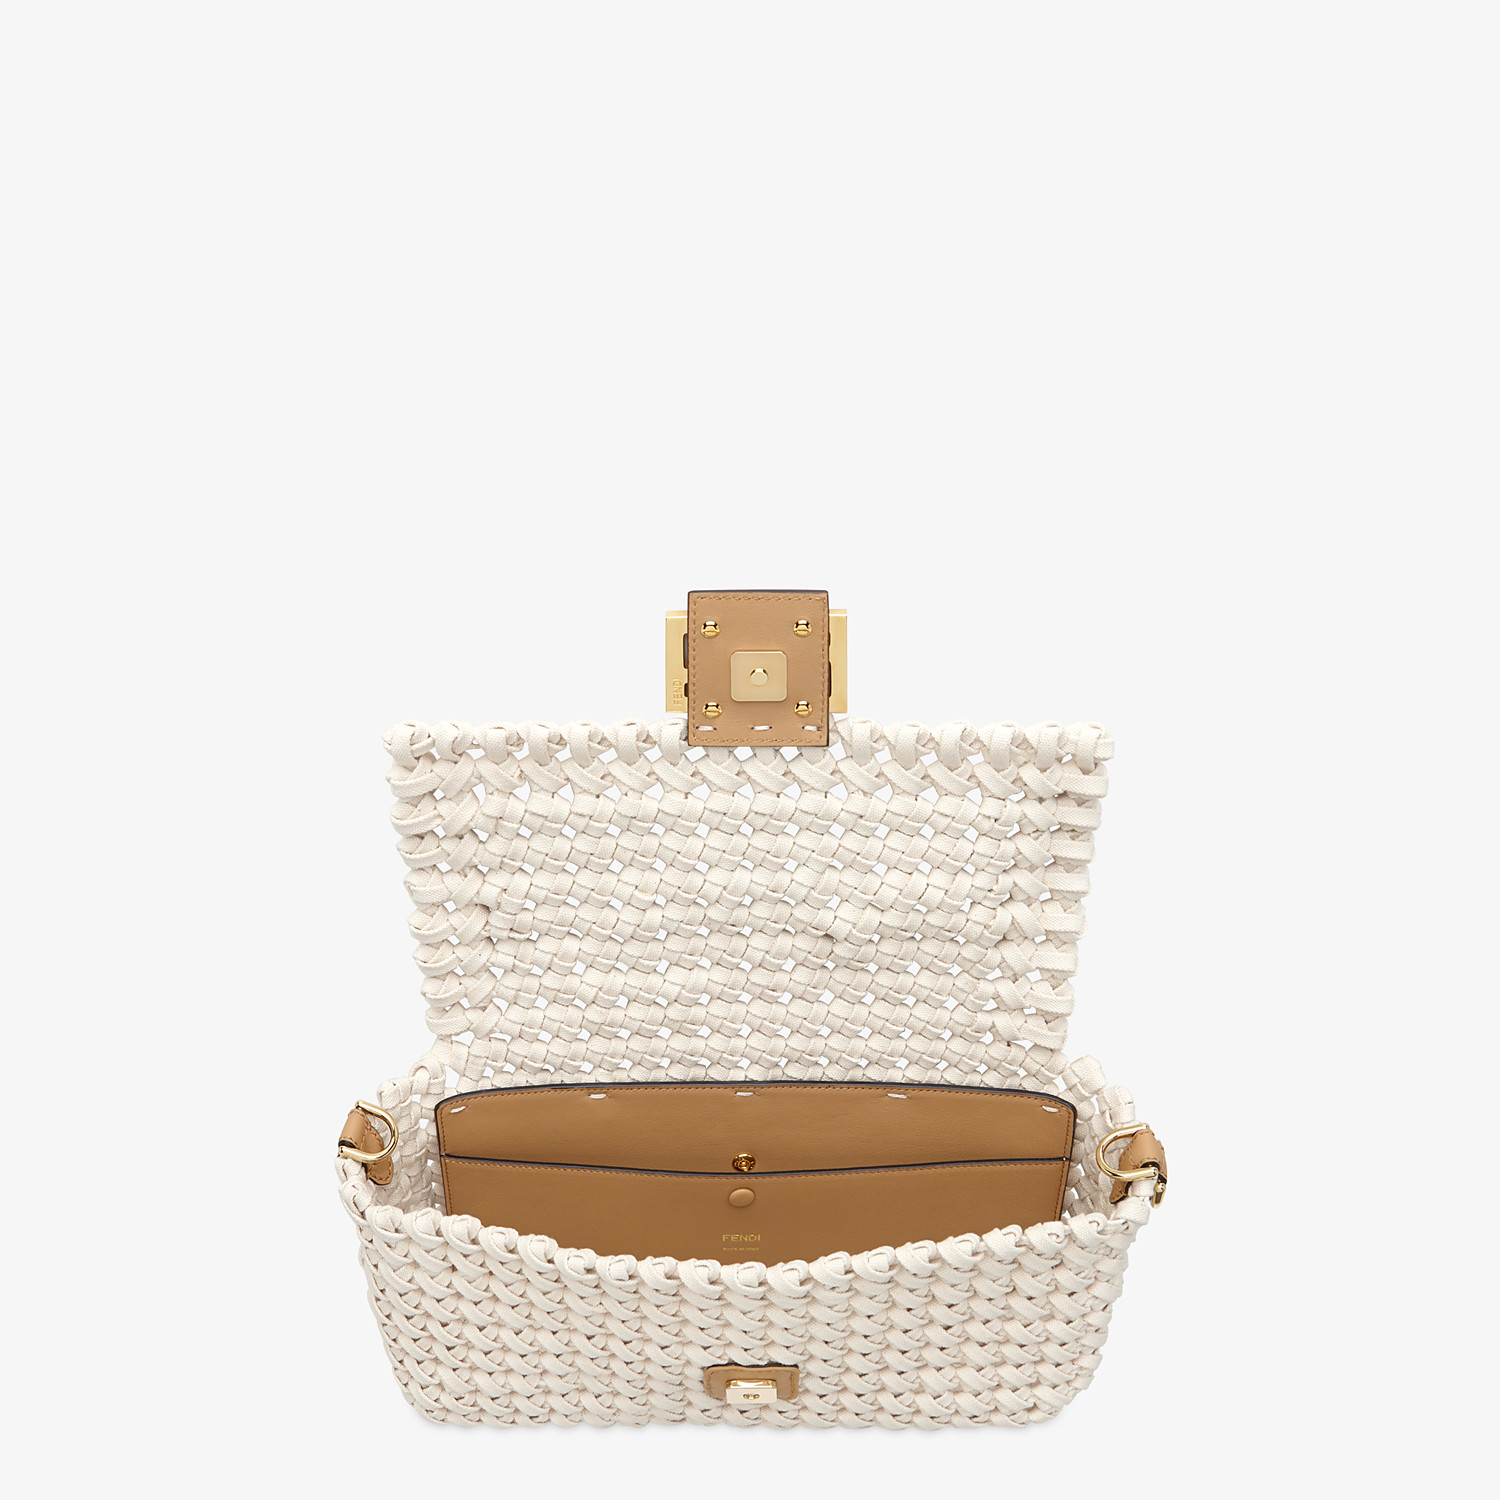 FENDI BAGUETTE - Tasche aus geflochtenem Canvas in Beige - view 5 detail